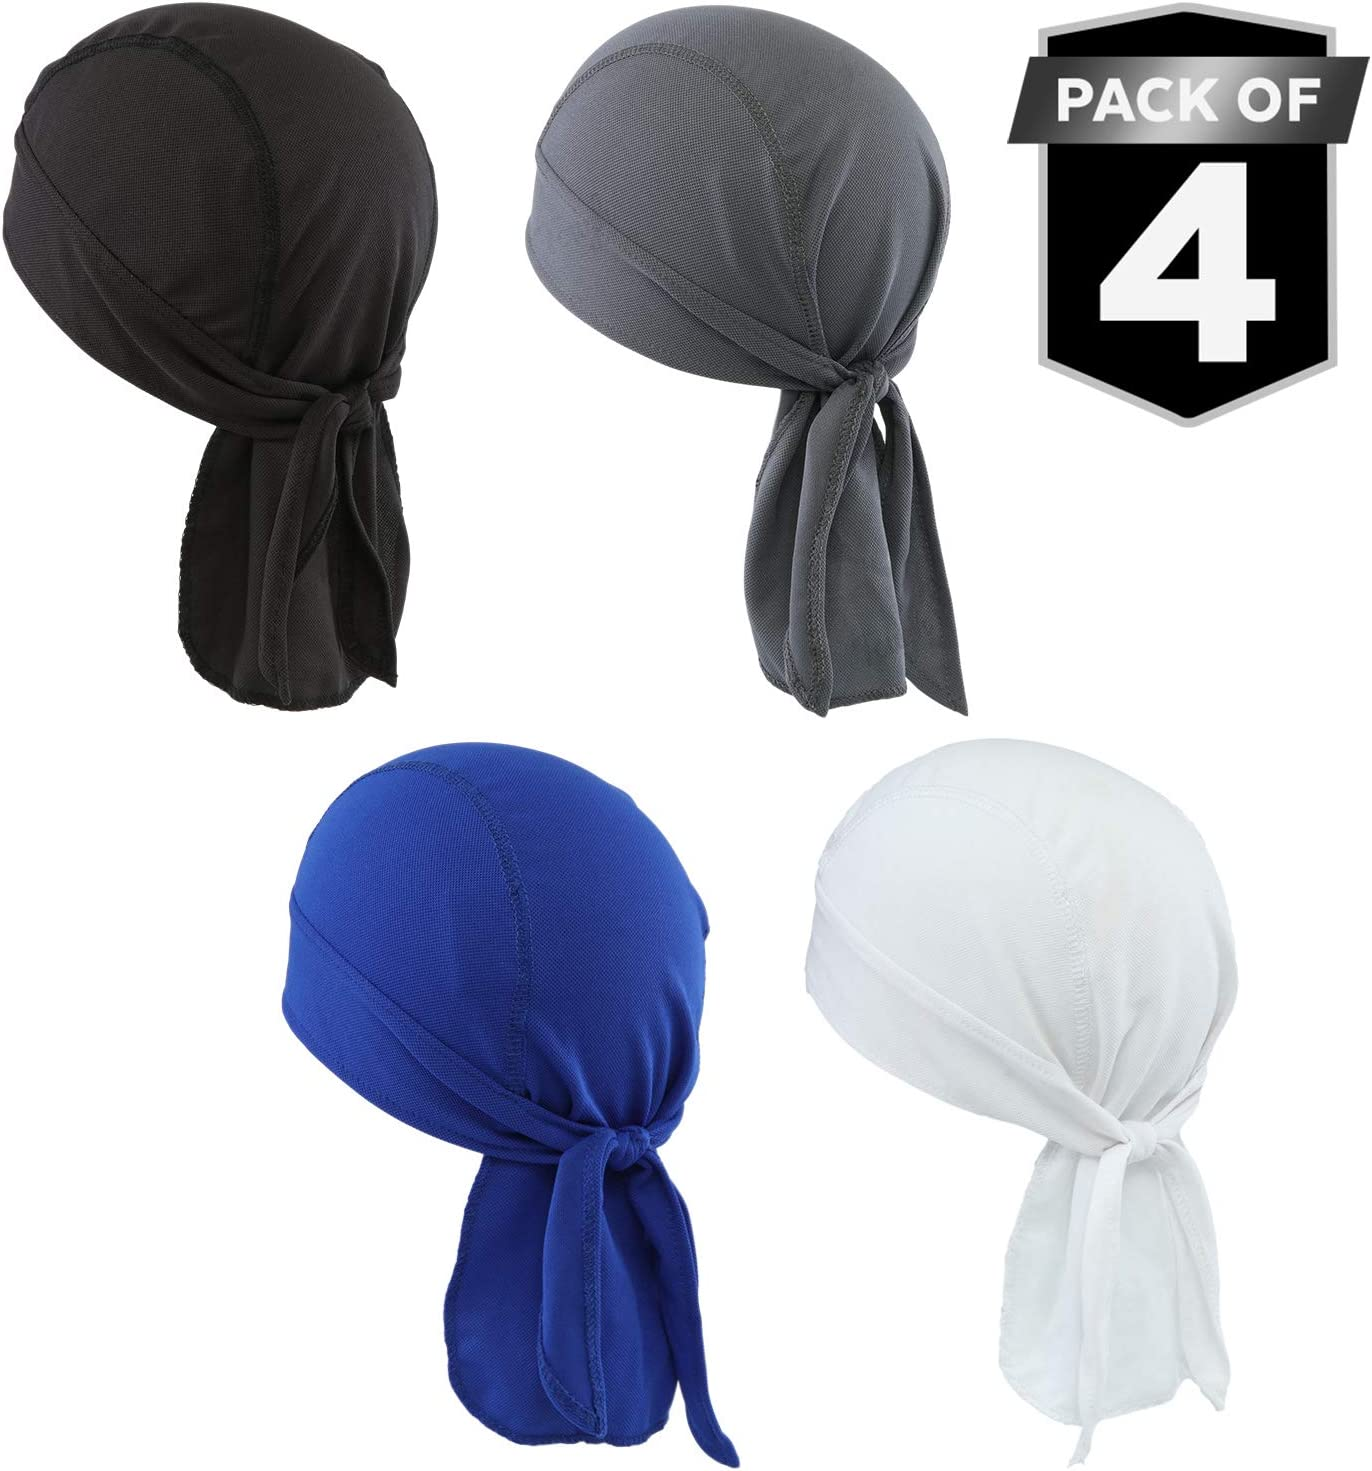 Sweat Wicking Cooling Helmet Liner - Do Rag Skull Cap Beanie for Men & Women. Pirate Hat Bandana & Head Wrap for Motorcycling, Running, Hiking, Cooking & Outdoor Activities. Stretchy & Breathable Mesh